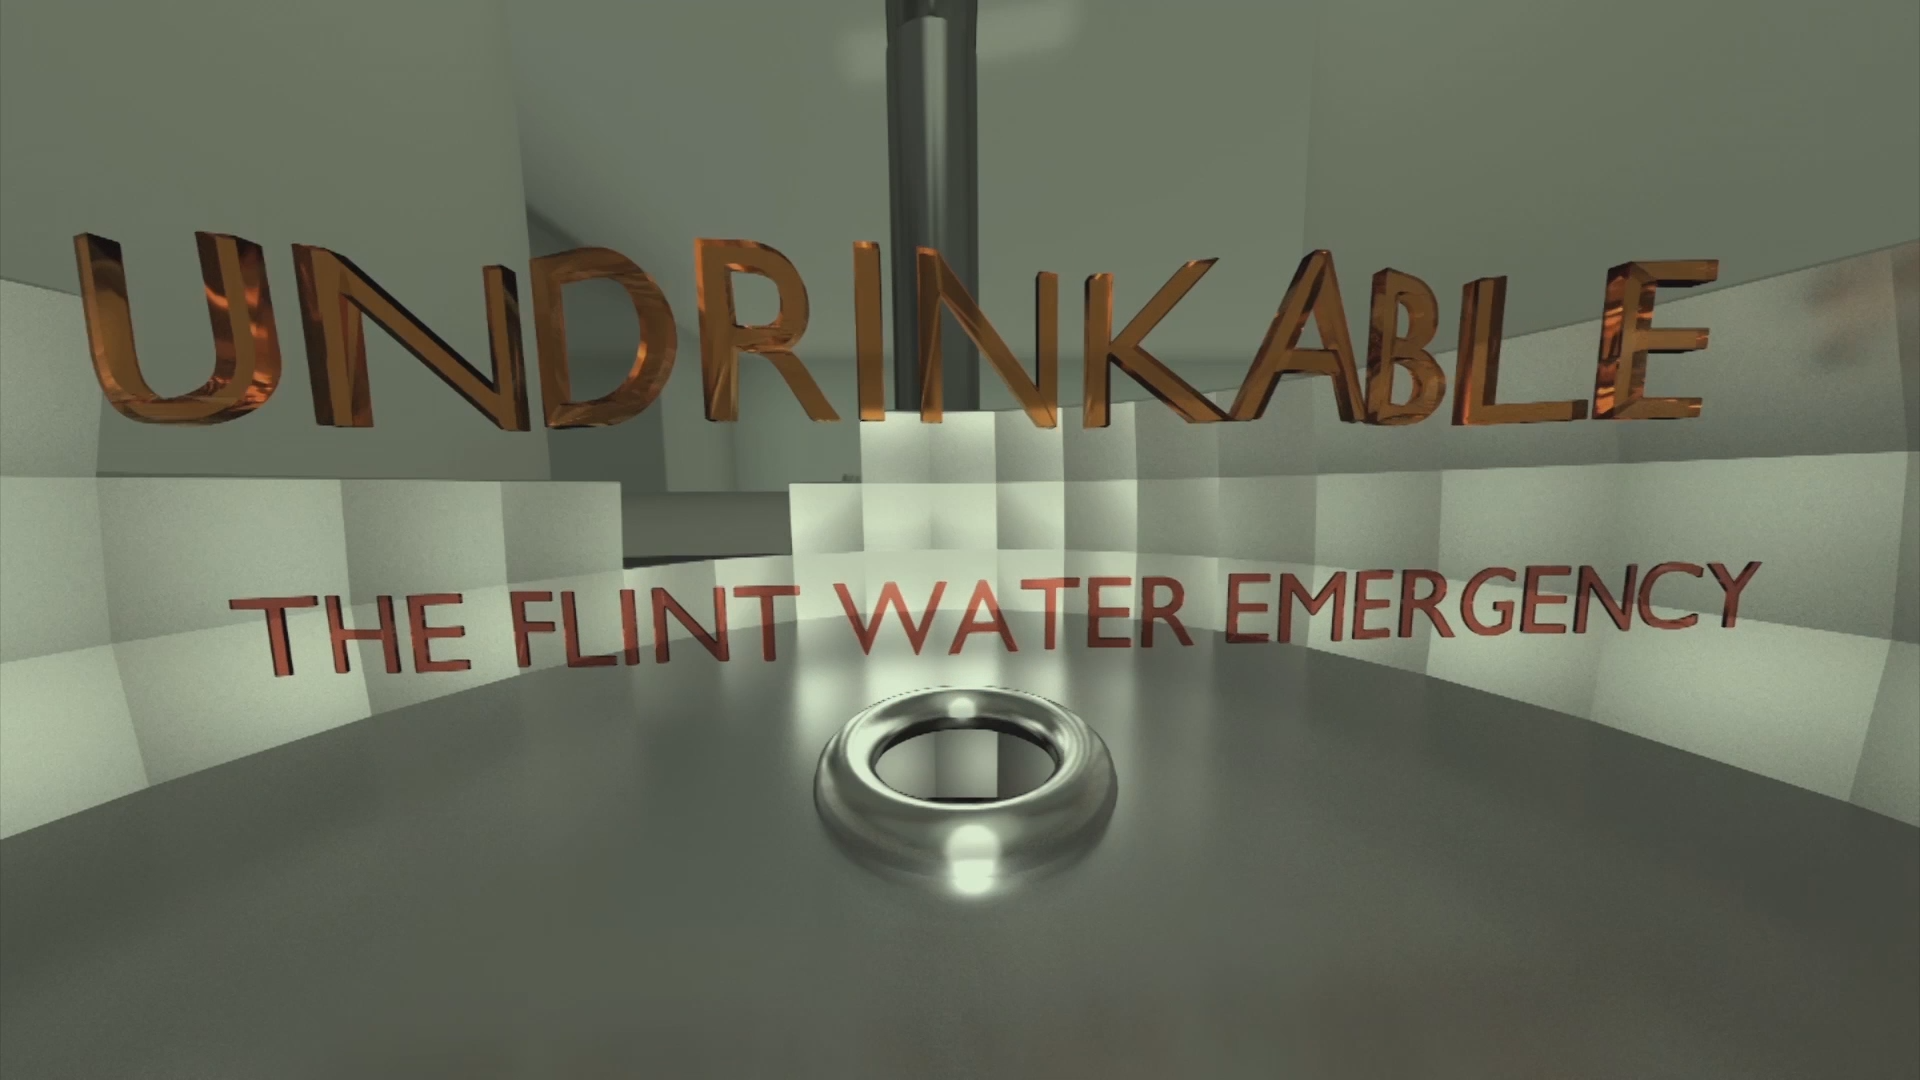 Undrinkable - The Flint Water Emergency